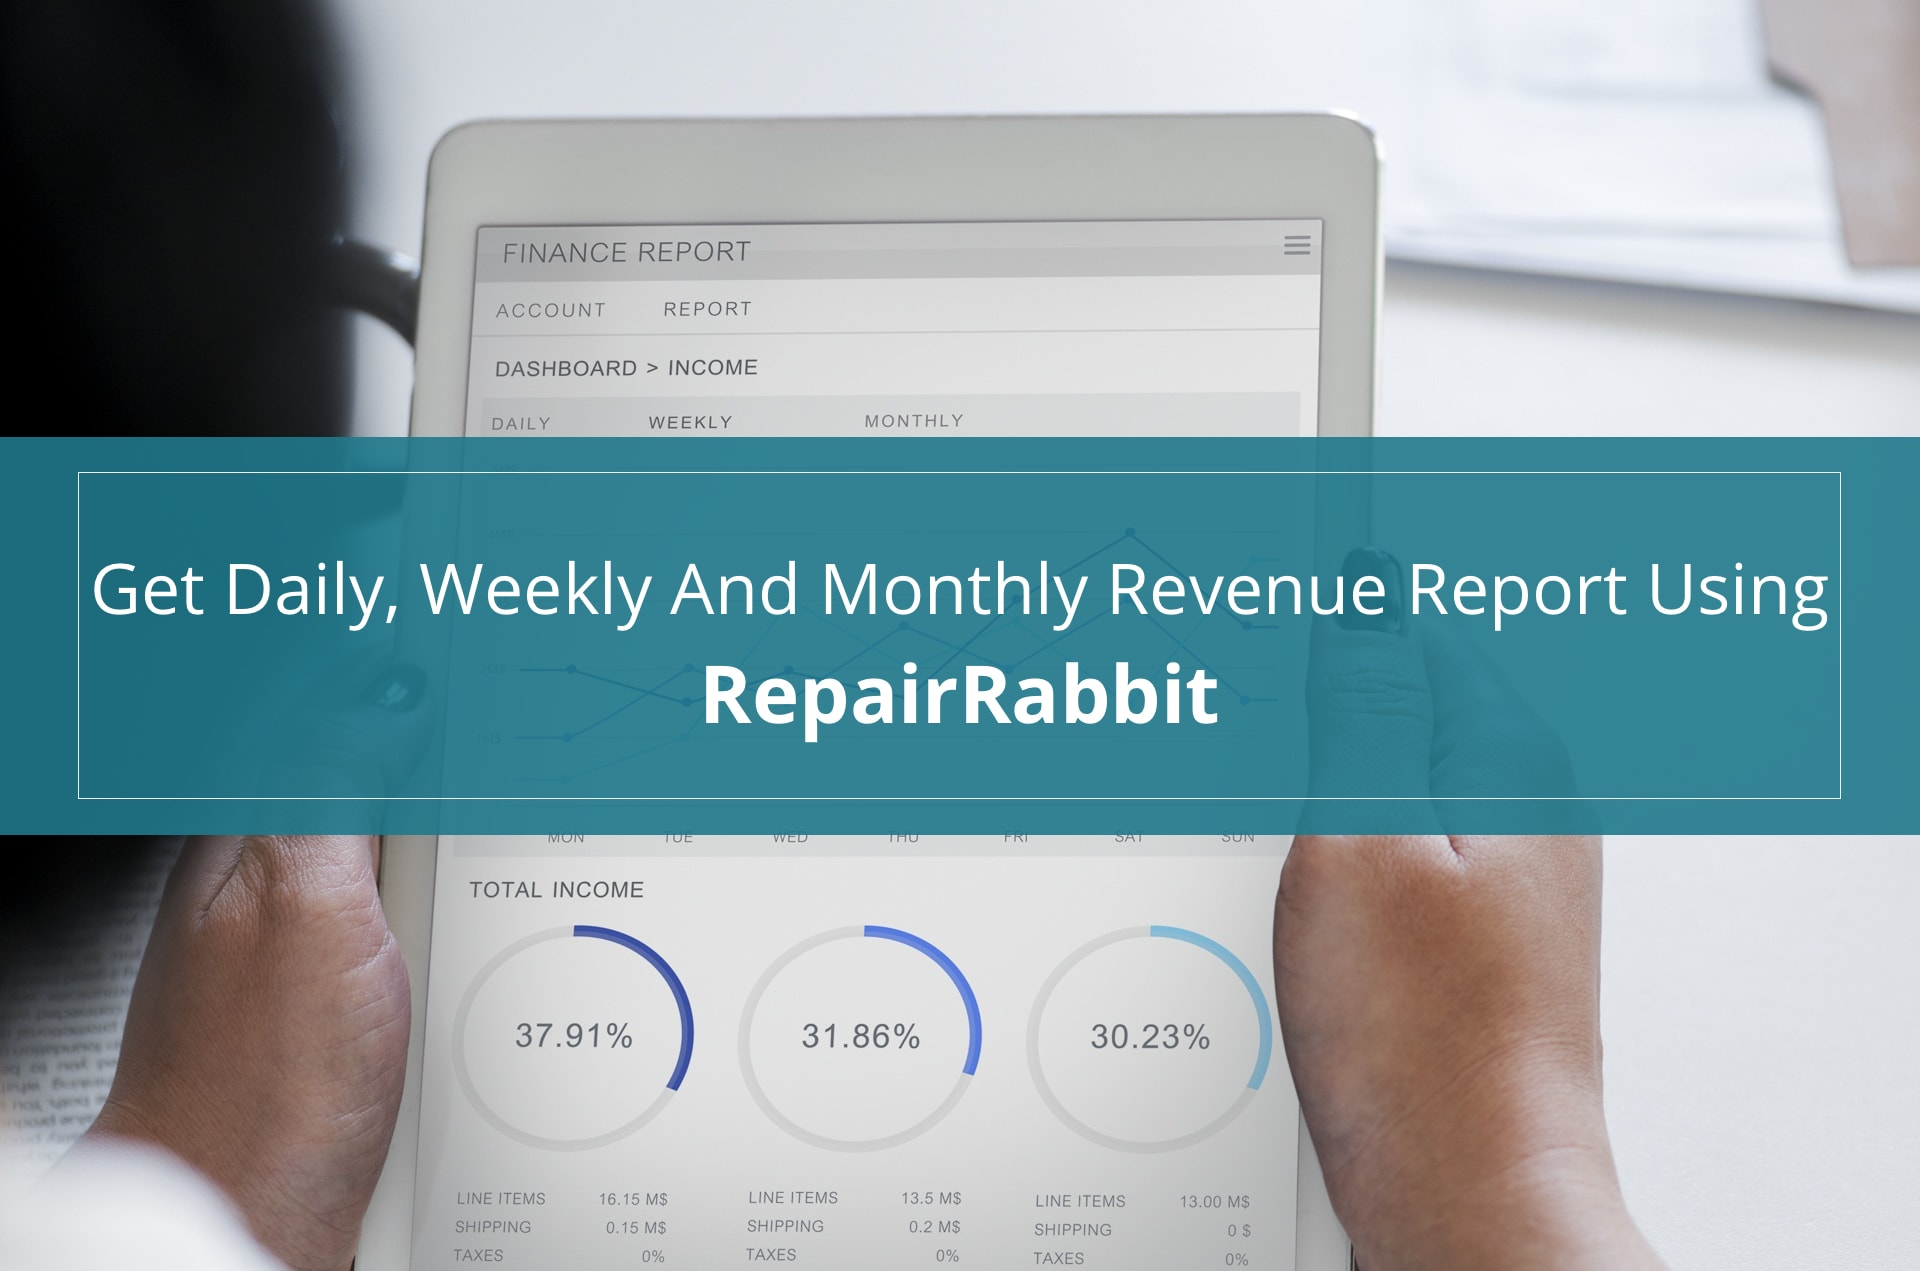 Get Daily Weekly And Monthly Revenue Report Using RepiarRabbit